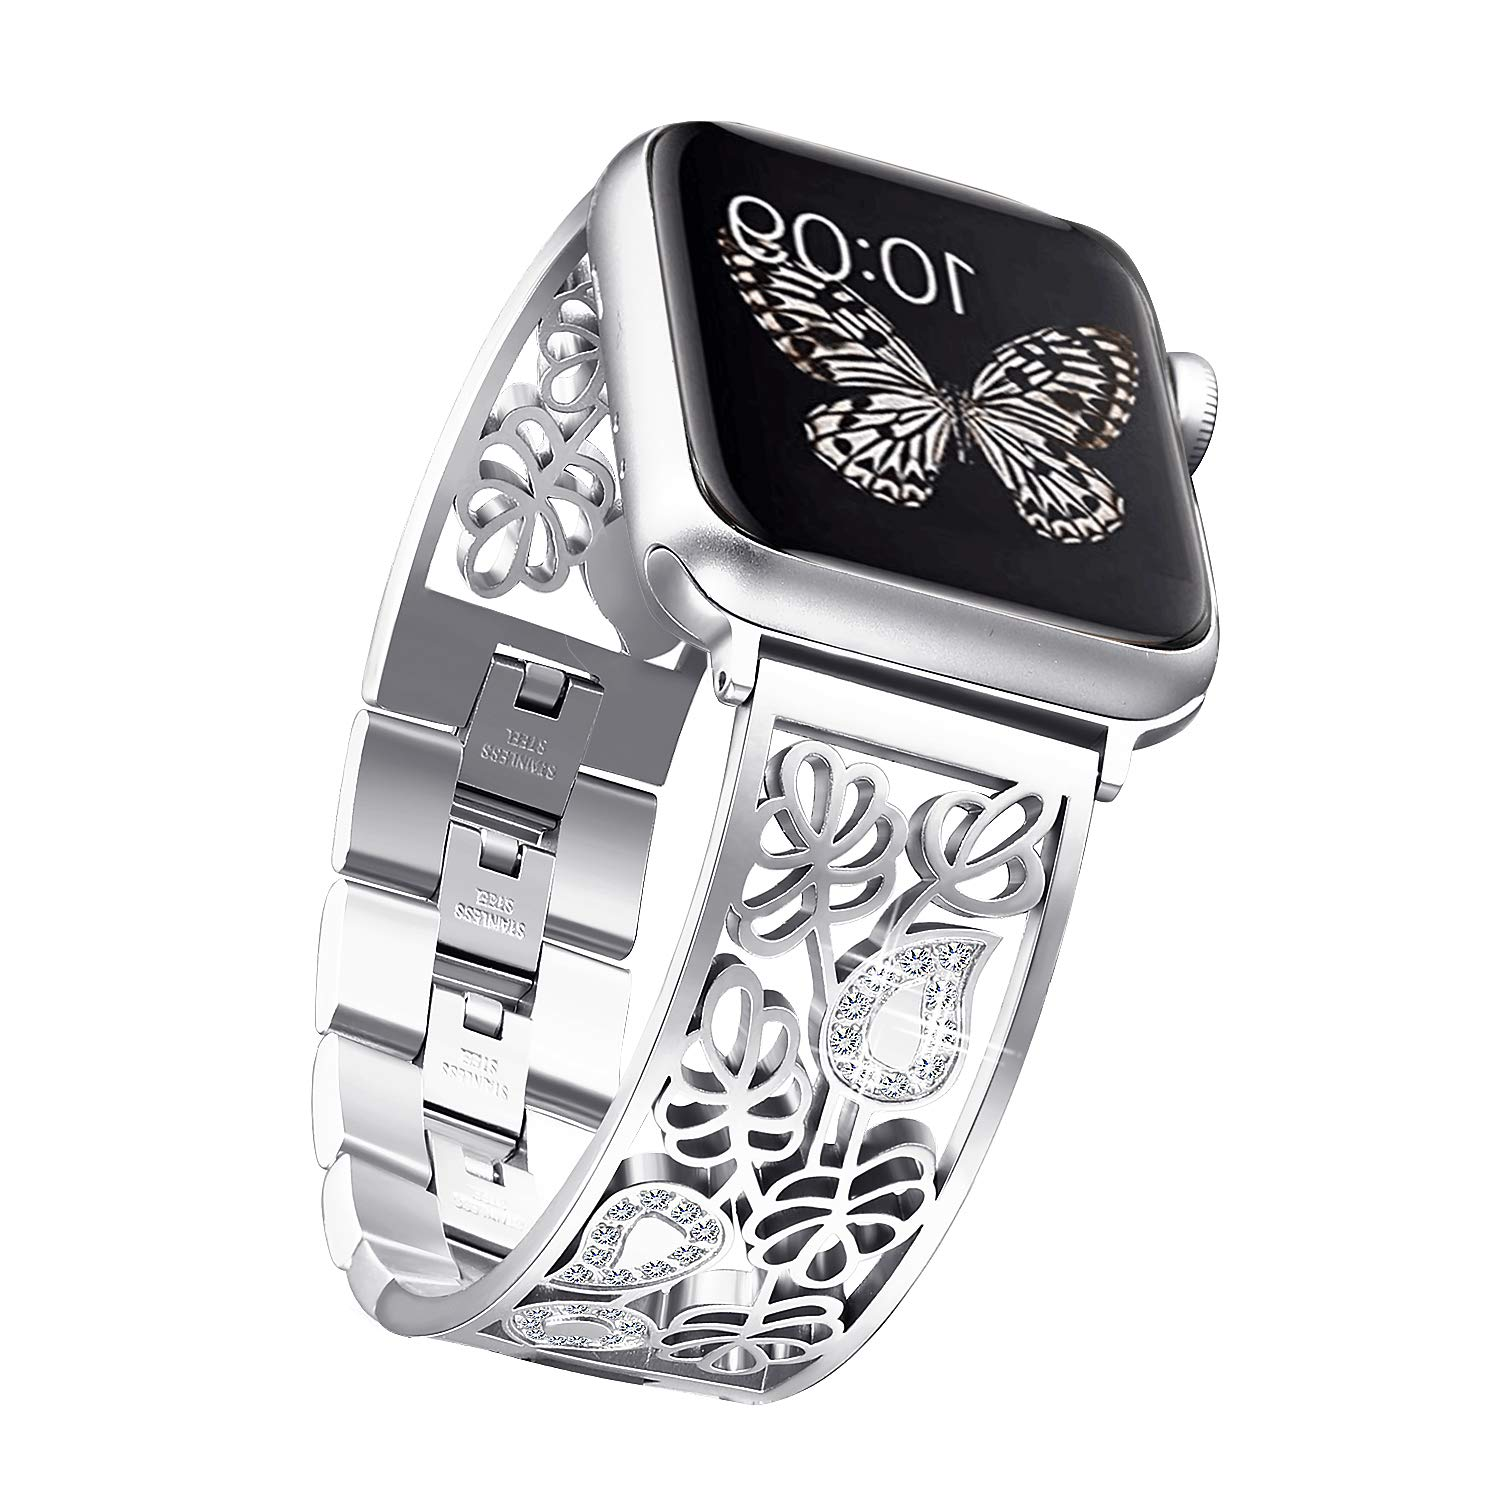 Secbolt Carved Flower Bling Bands Compatible with Apple Watch Band 38mm 40mm iwatch Series 5/4/3/2/1, Stainless Steel Dressy Jewelry Diamond Bracelet Bangle Wristband Women, Silver by Secbolt